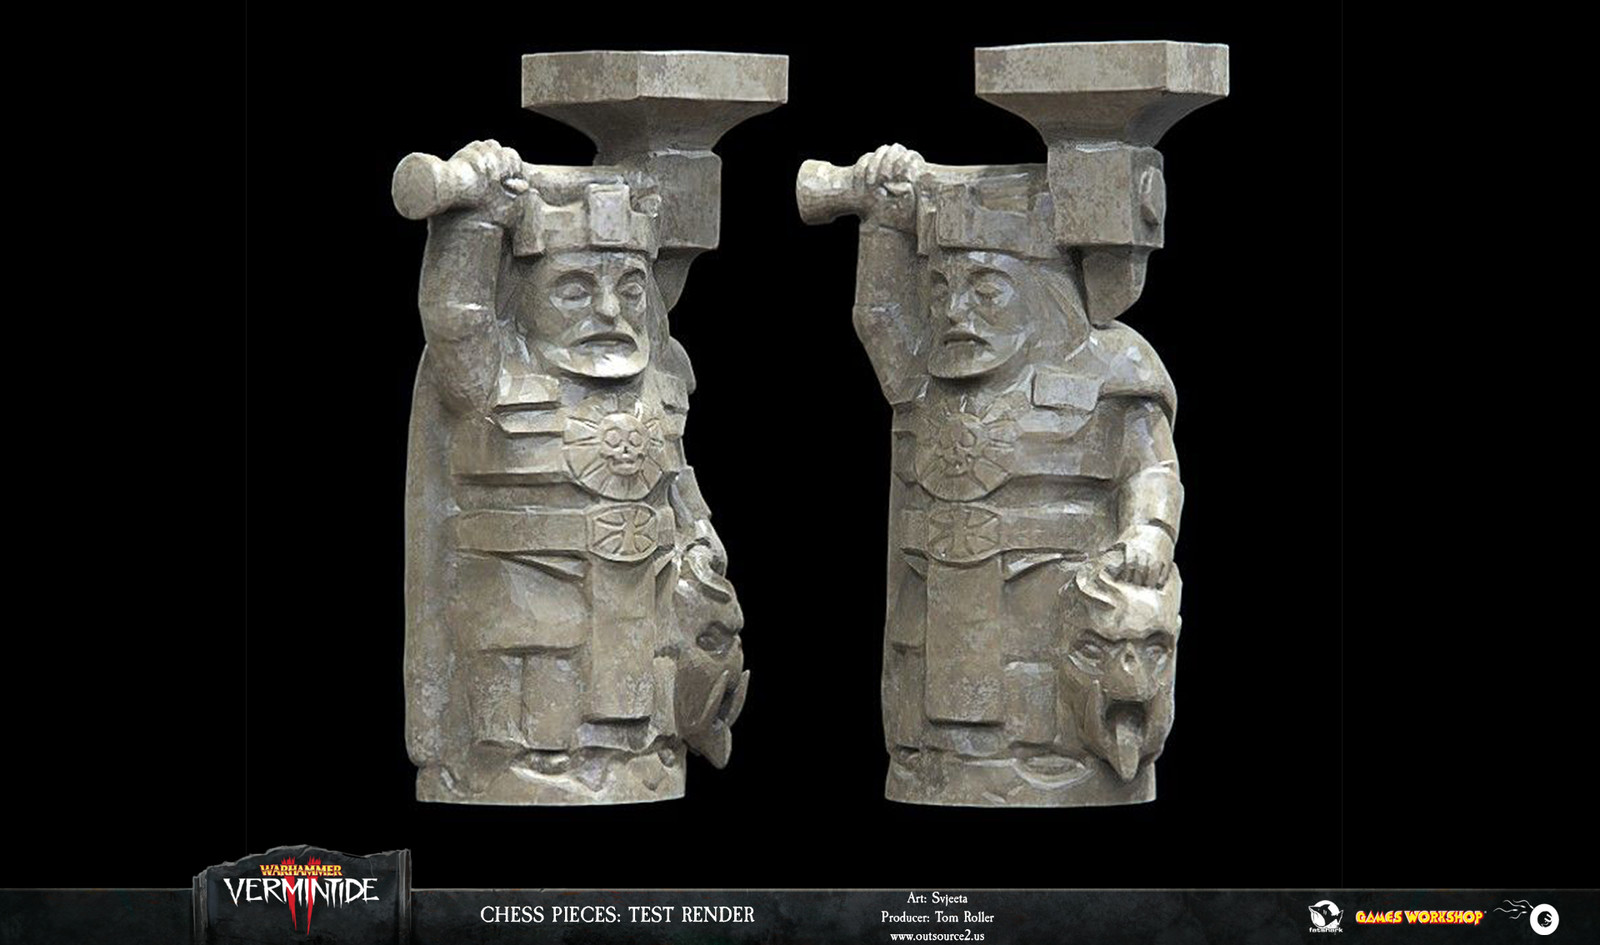 For the final statuettes we decided to go after a stone material rather than ivory.